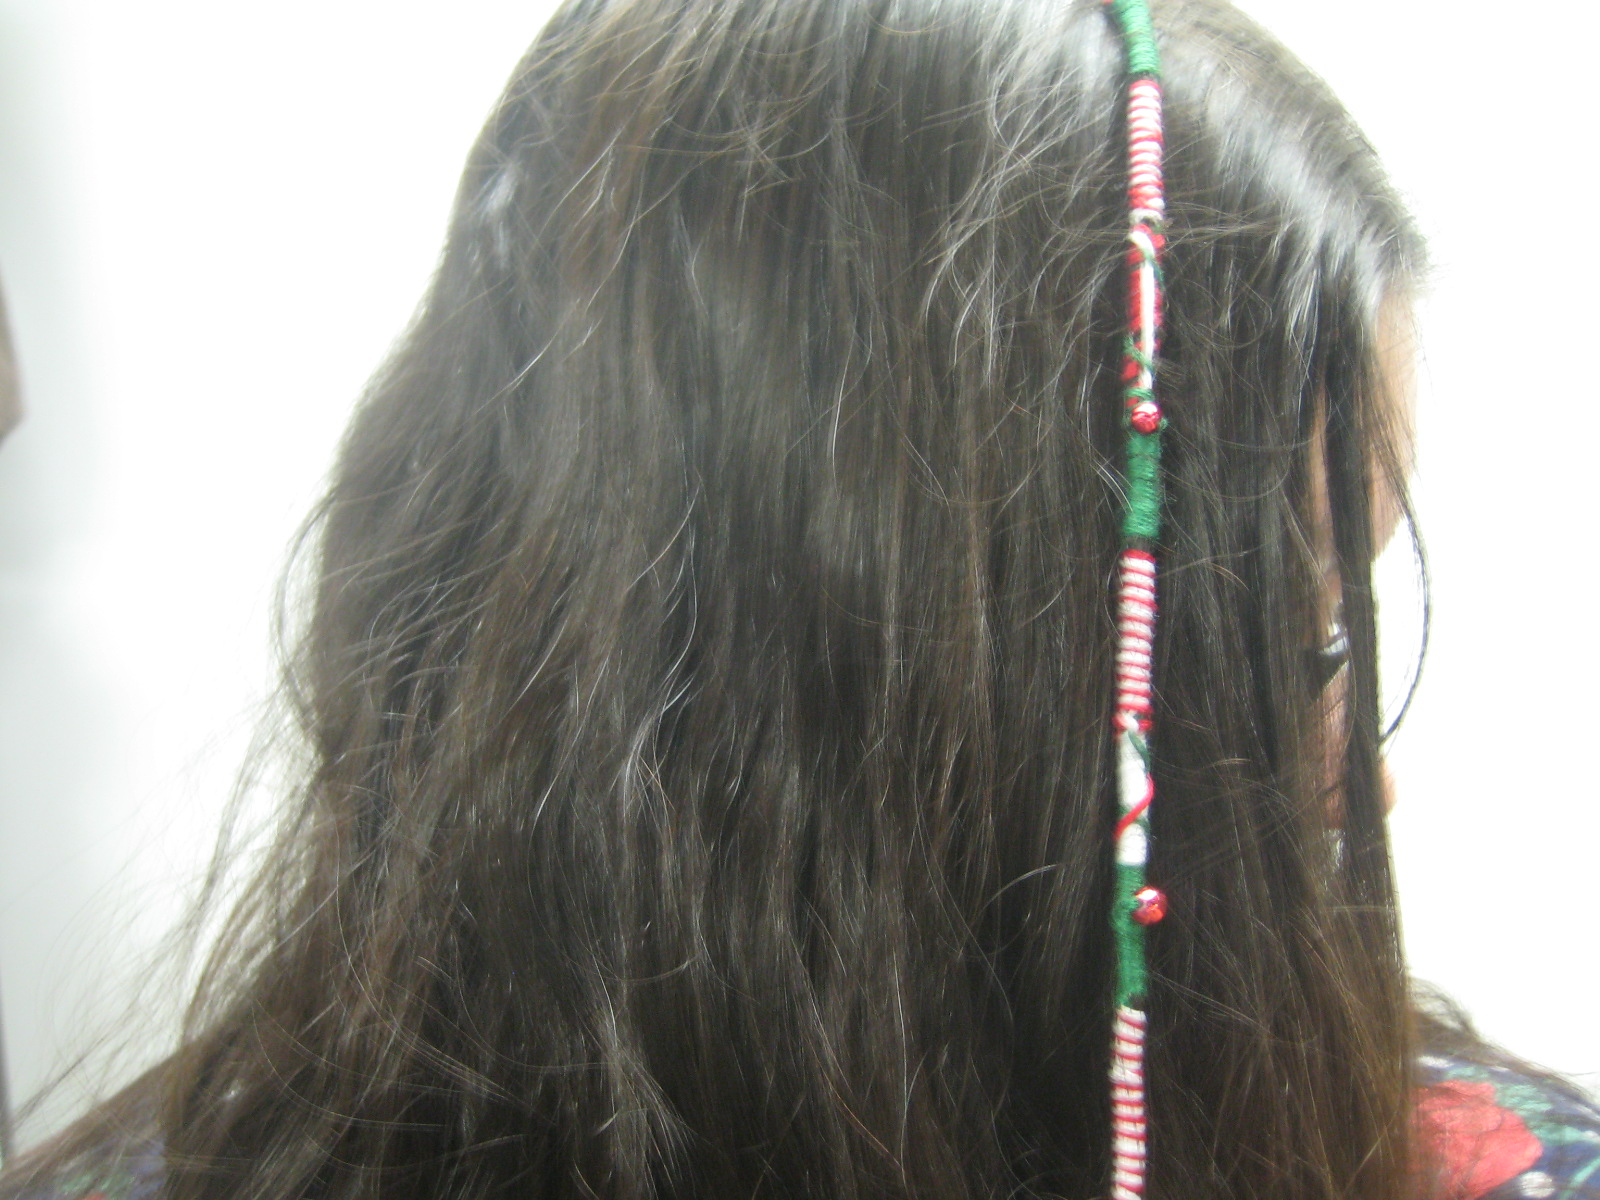 HAIR WRAP EMBROIDERY FLOSS  Embroidery Designs